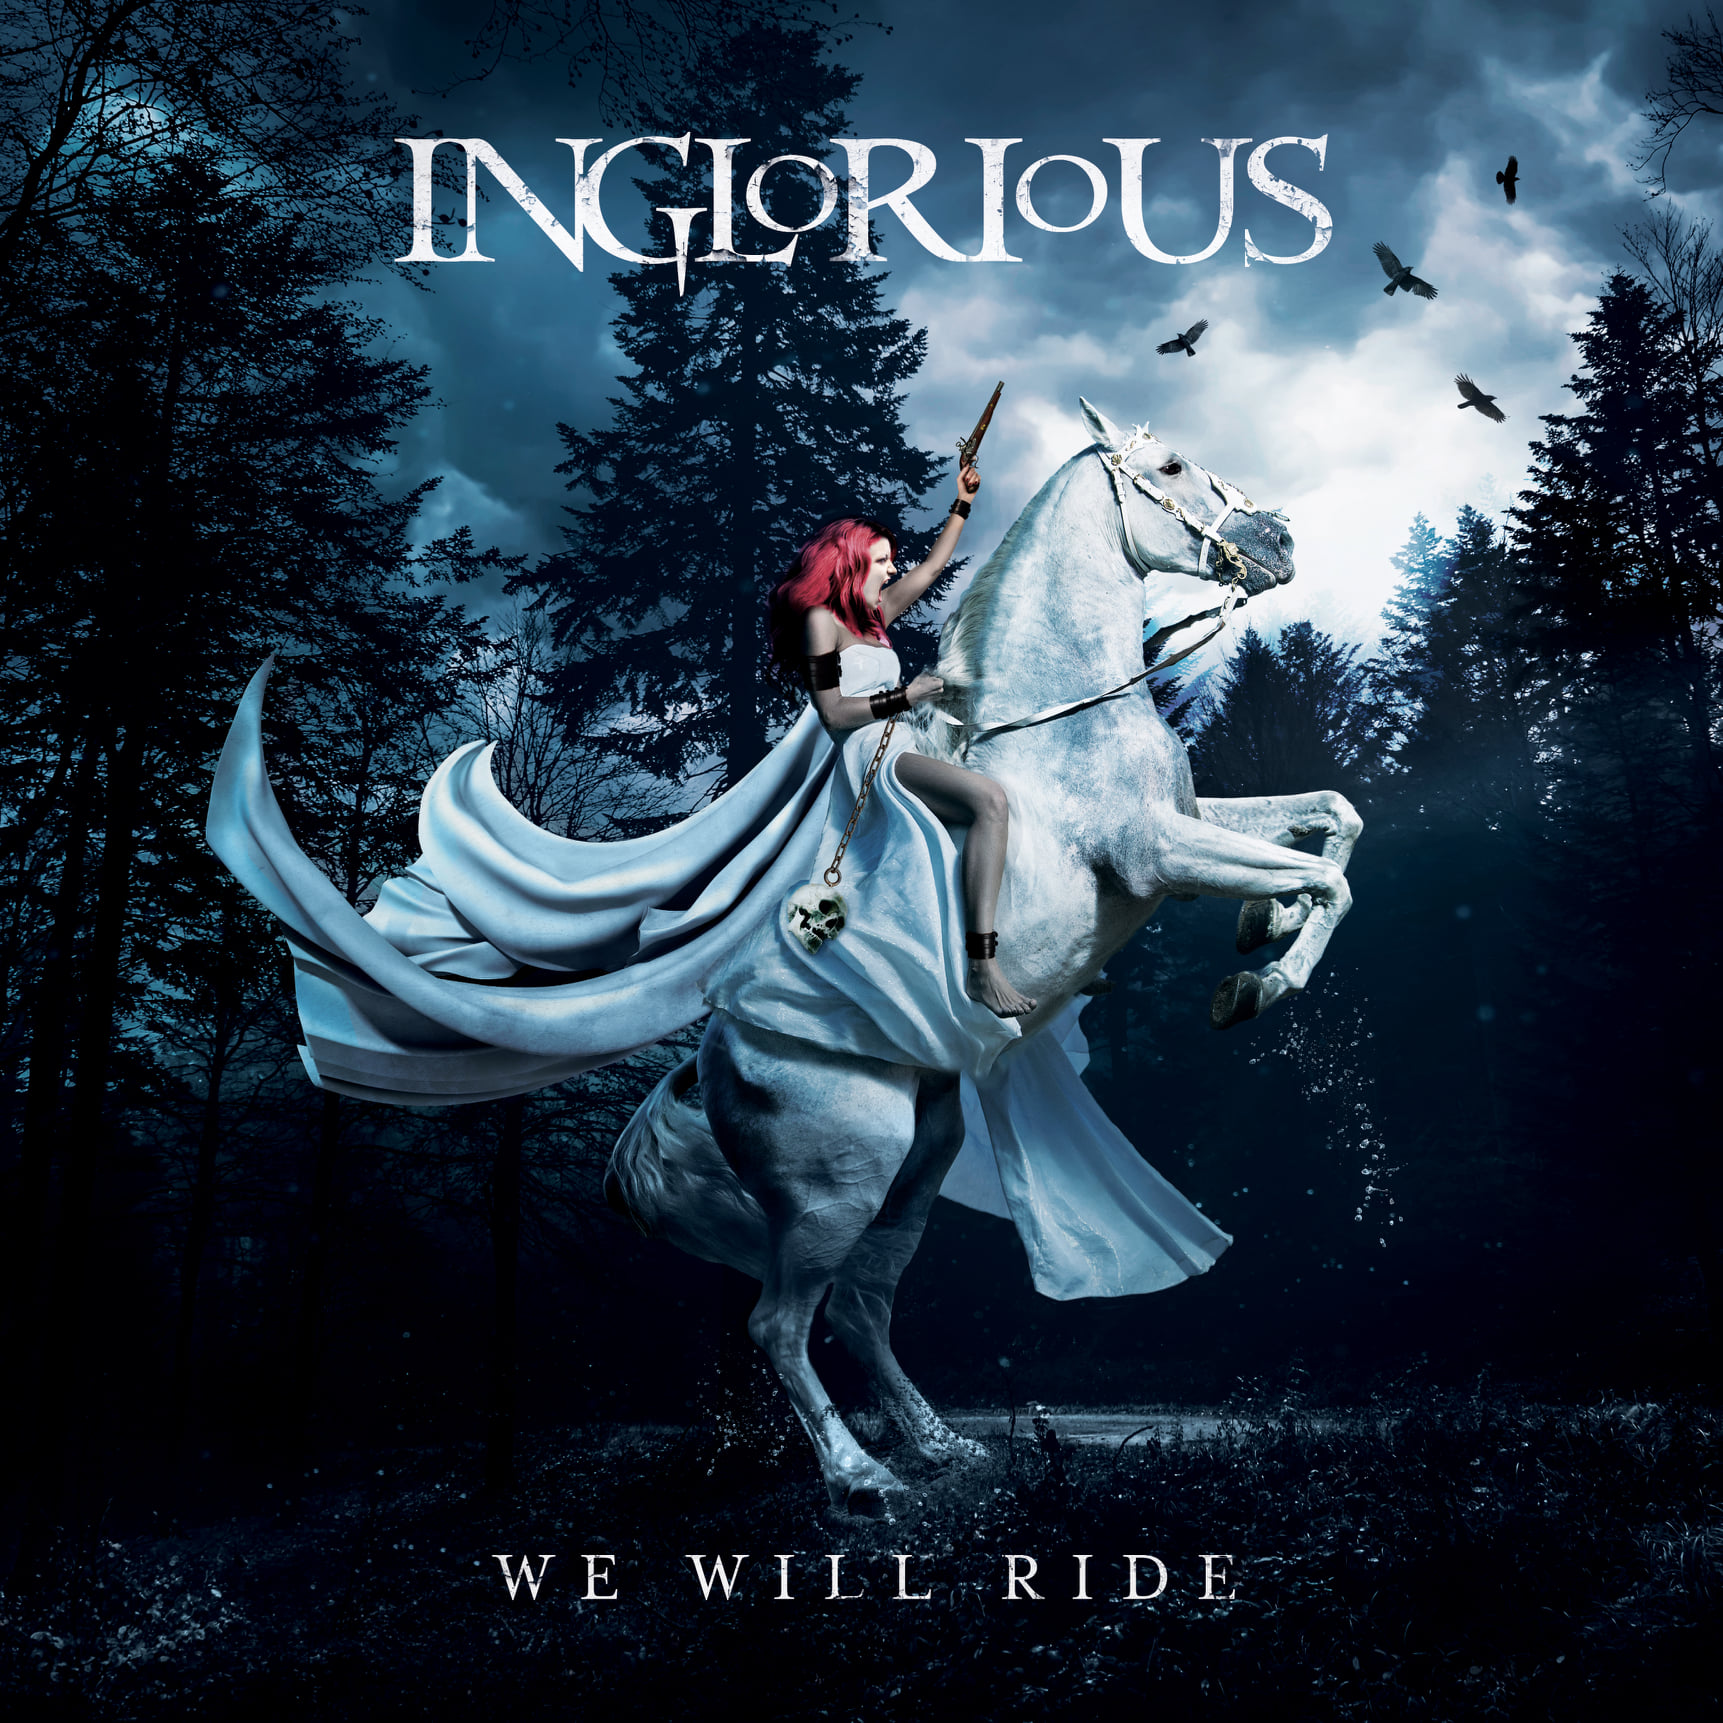 inglorious we will ride cover artwork